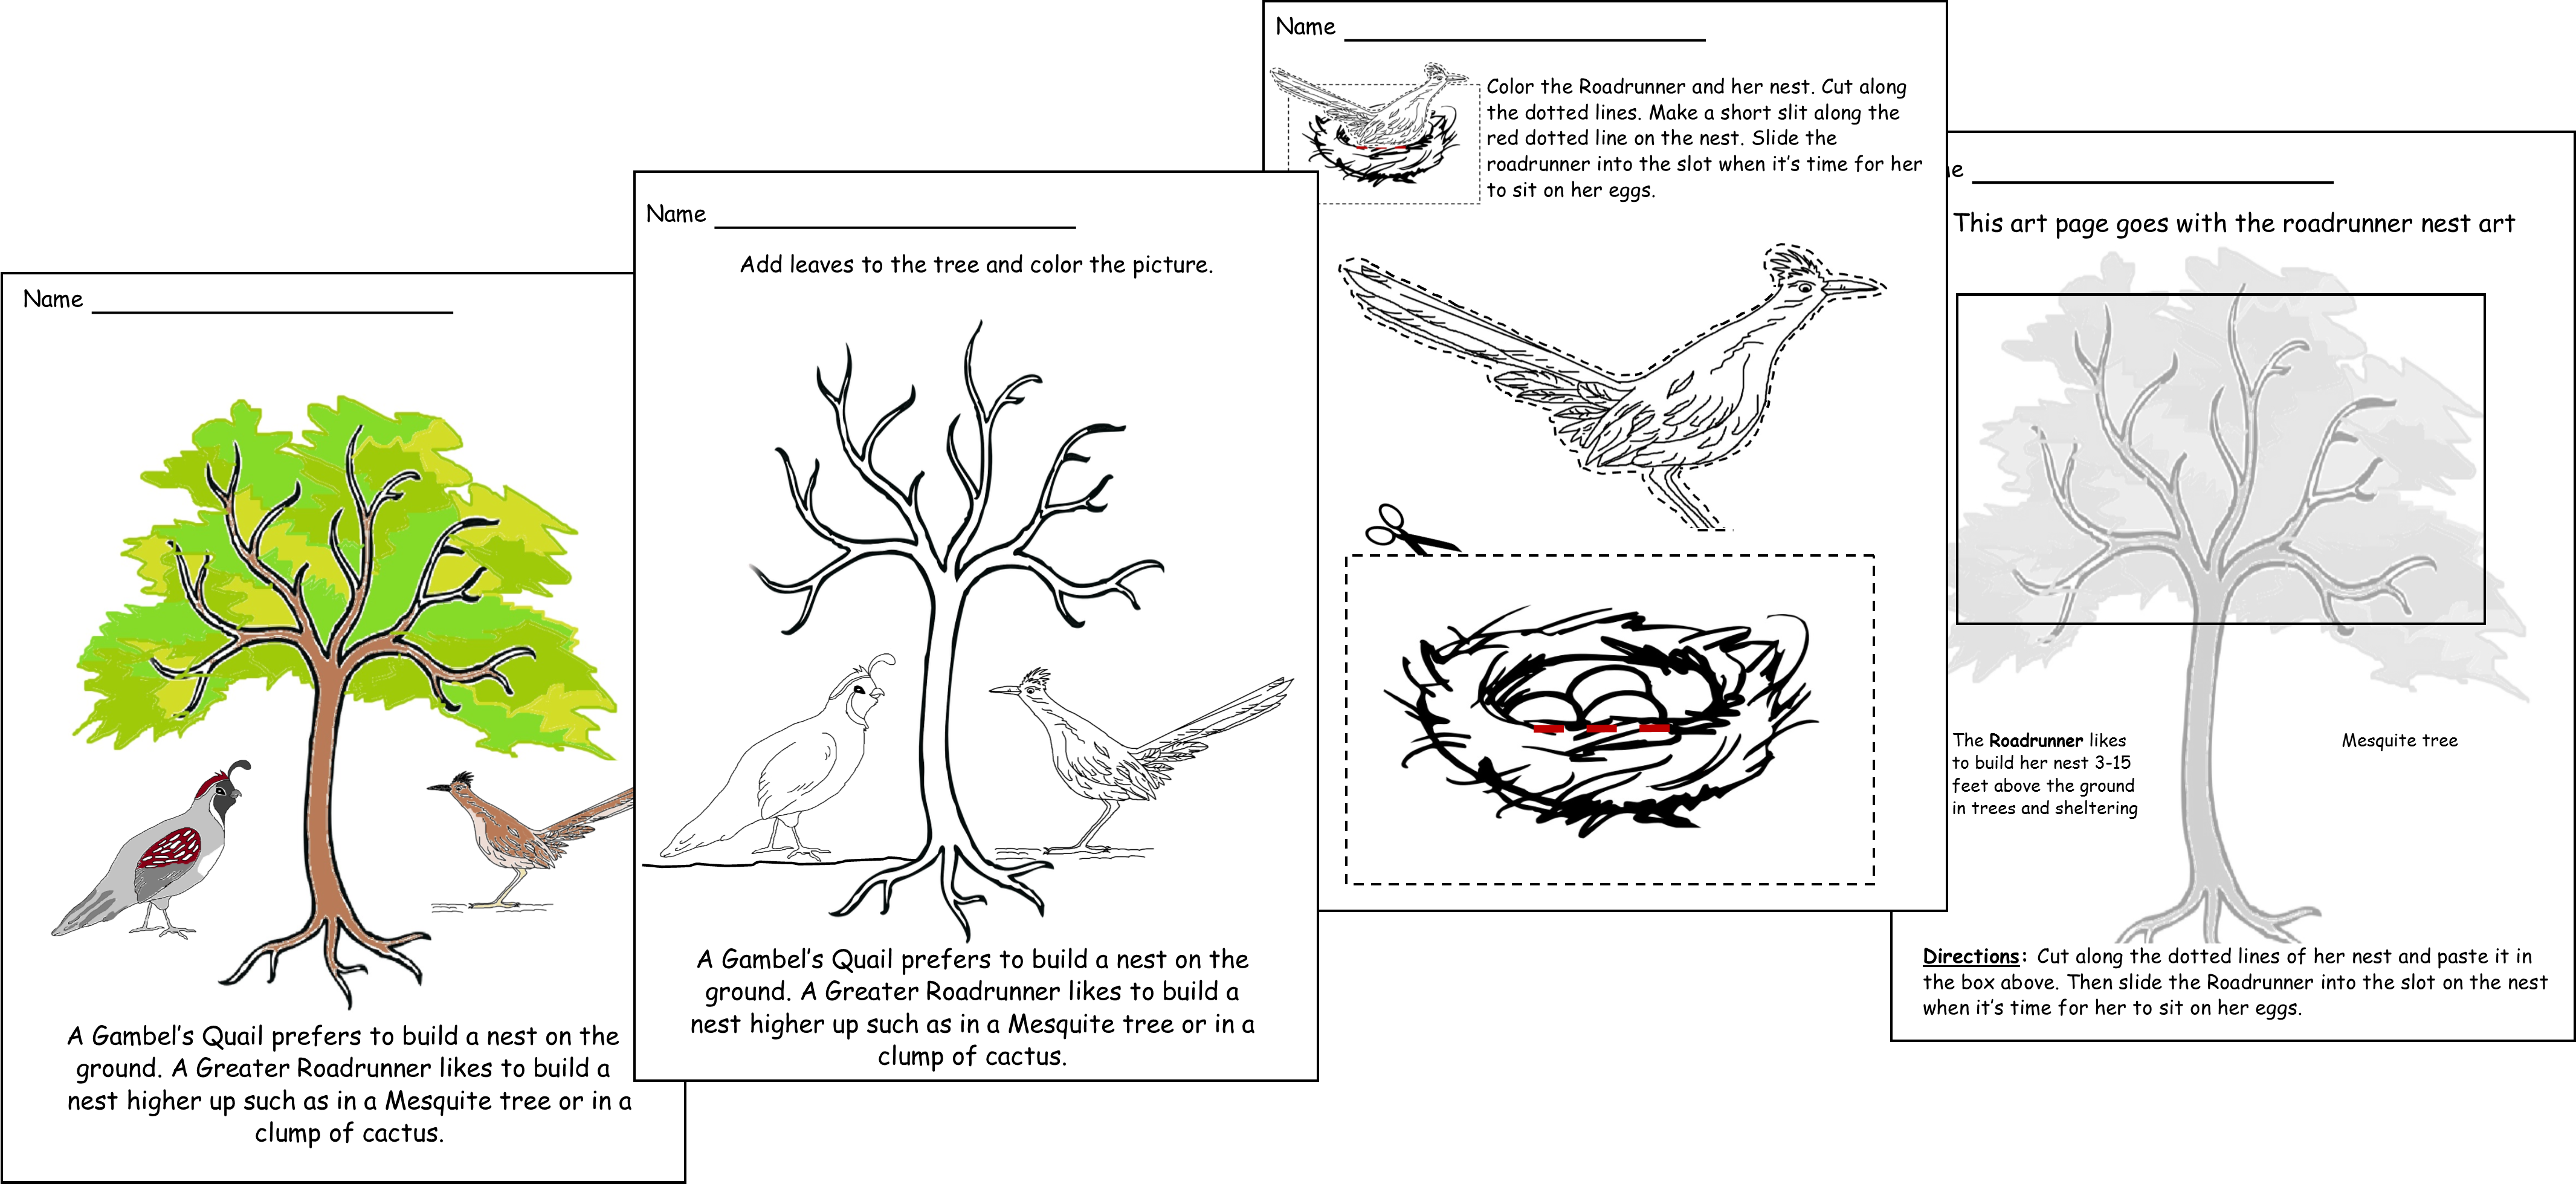 black and white drawings about The Greater Roadrunner